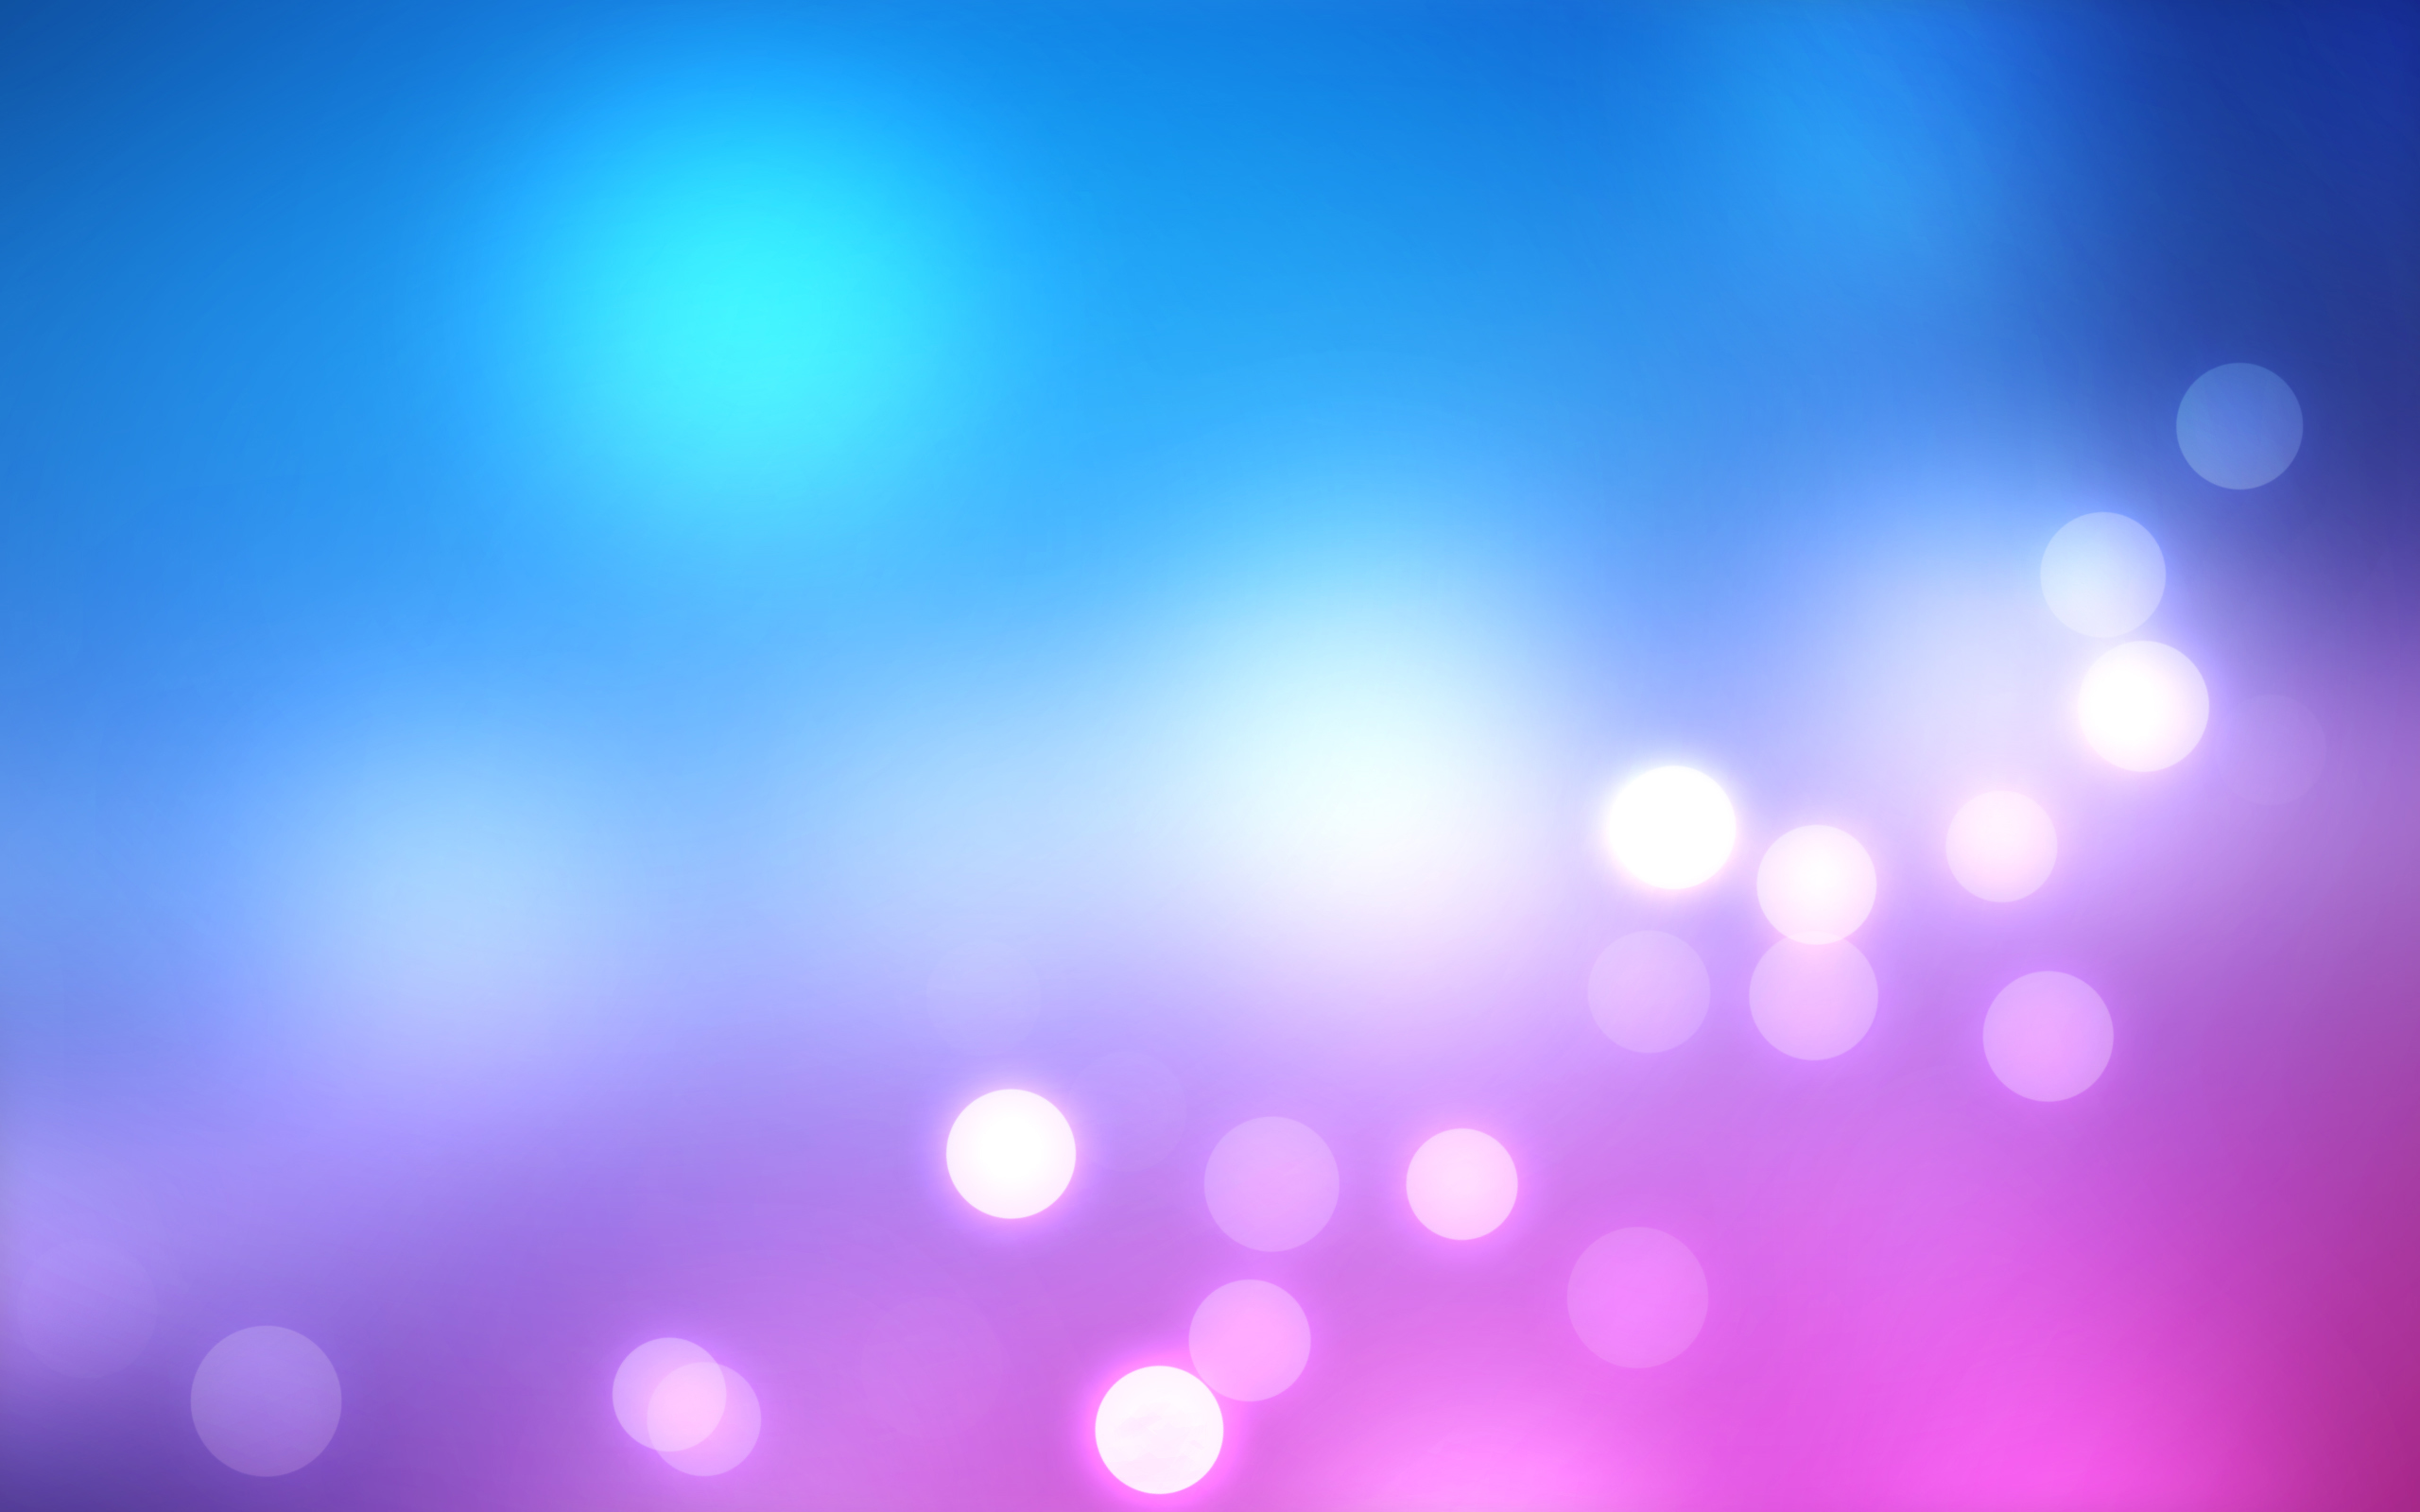 Colorful Abstract HD Backgrounds 6942905 2560x1600